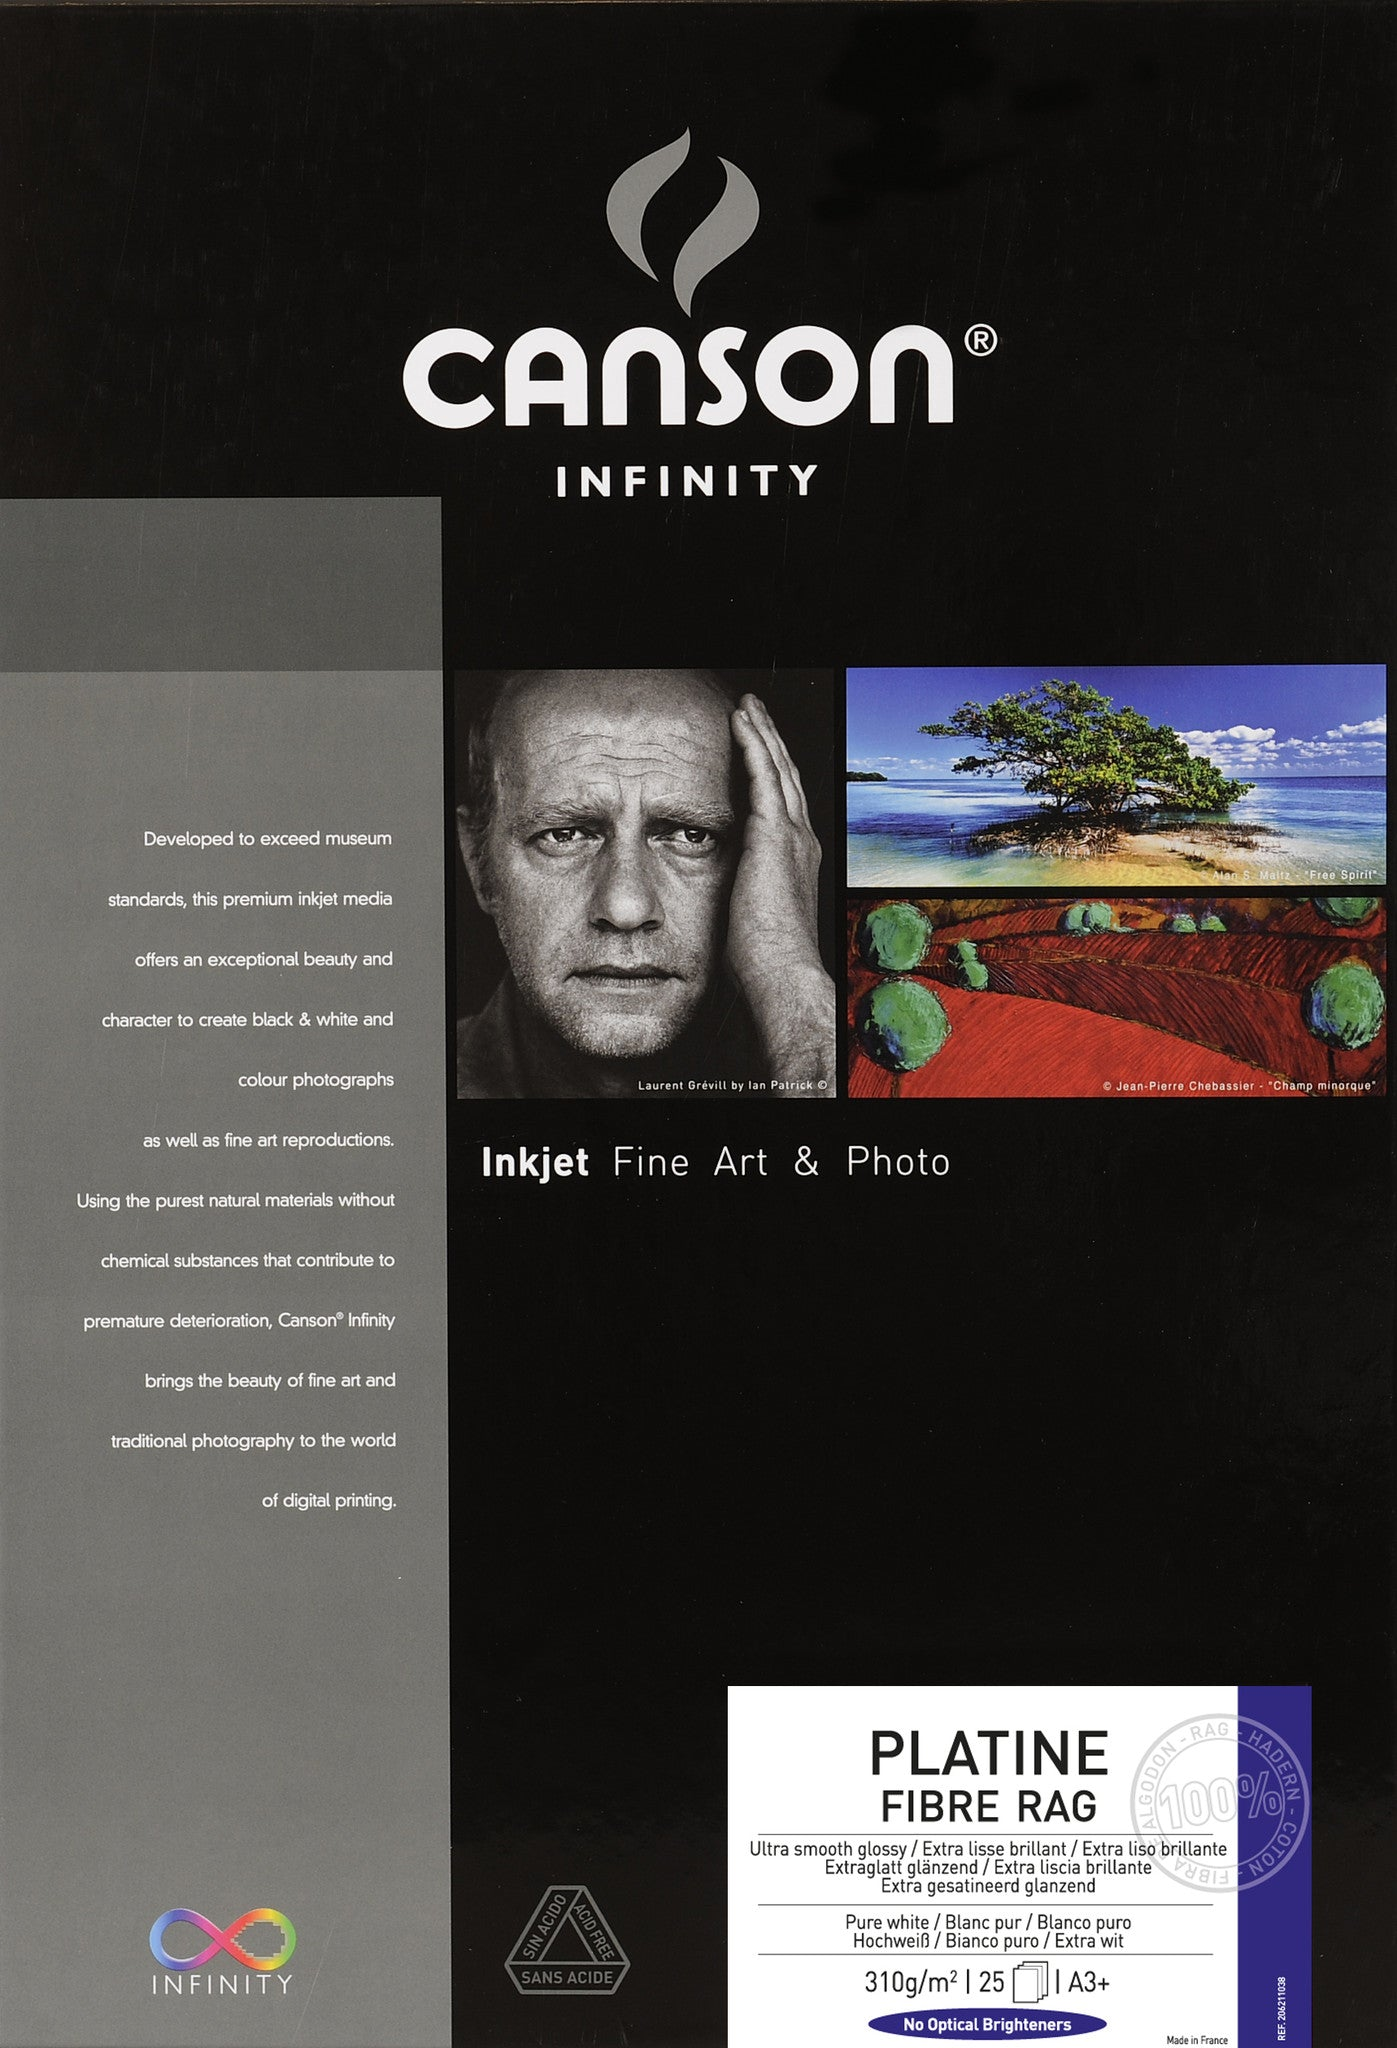 Canson Infinity Platine Fibre Rag - 310gsm - A3+ (25 sheets) – Wall ...